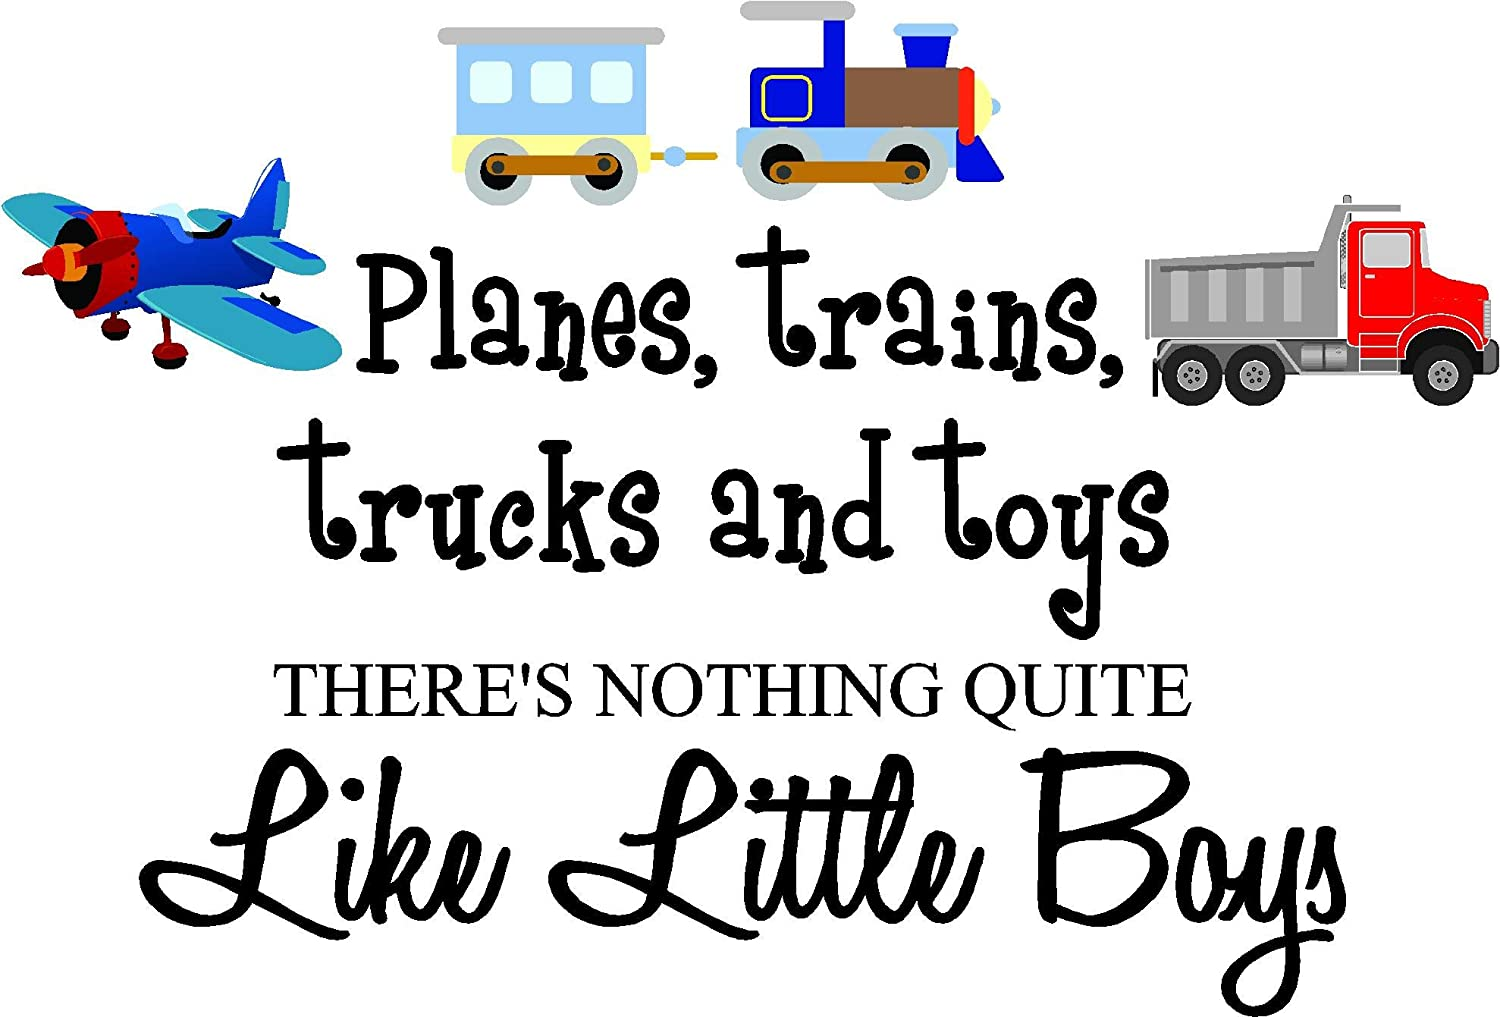 Planes, Trains, Trucks and Toys There's Nothing Quite Like Little Boys (Printed Plane, Train, Truck Set) Cute Inspirational Home Vinyl Wall Decals Sayings Art Lettering